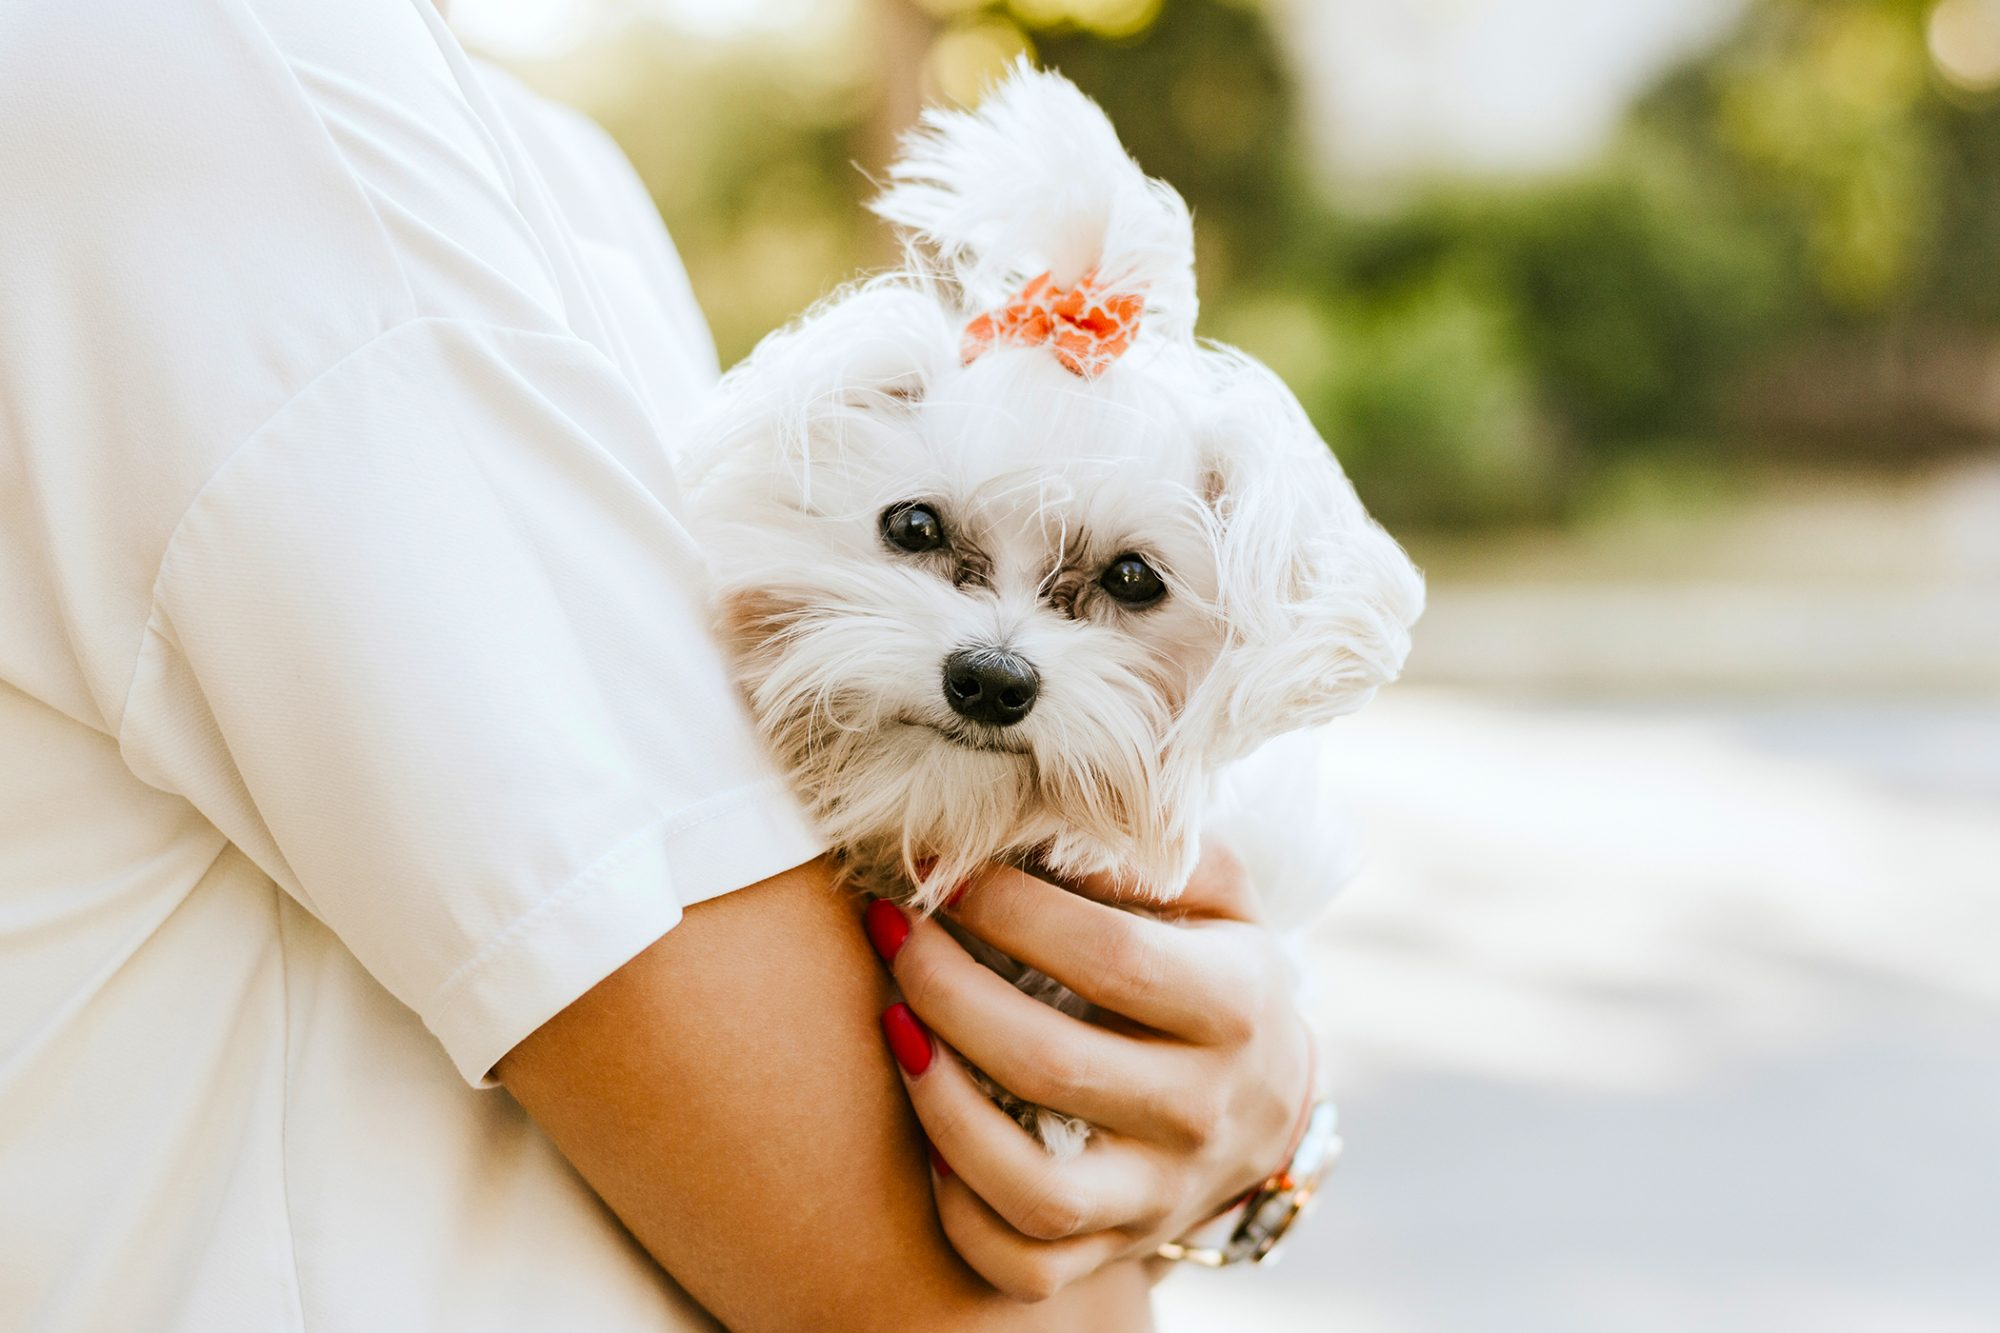 Maltese terrier with bow in hair being held by woman outdoors